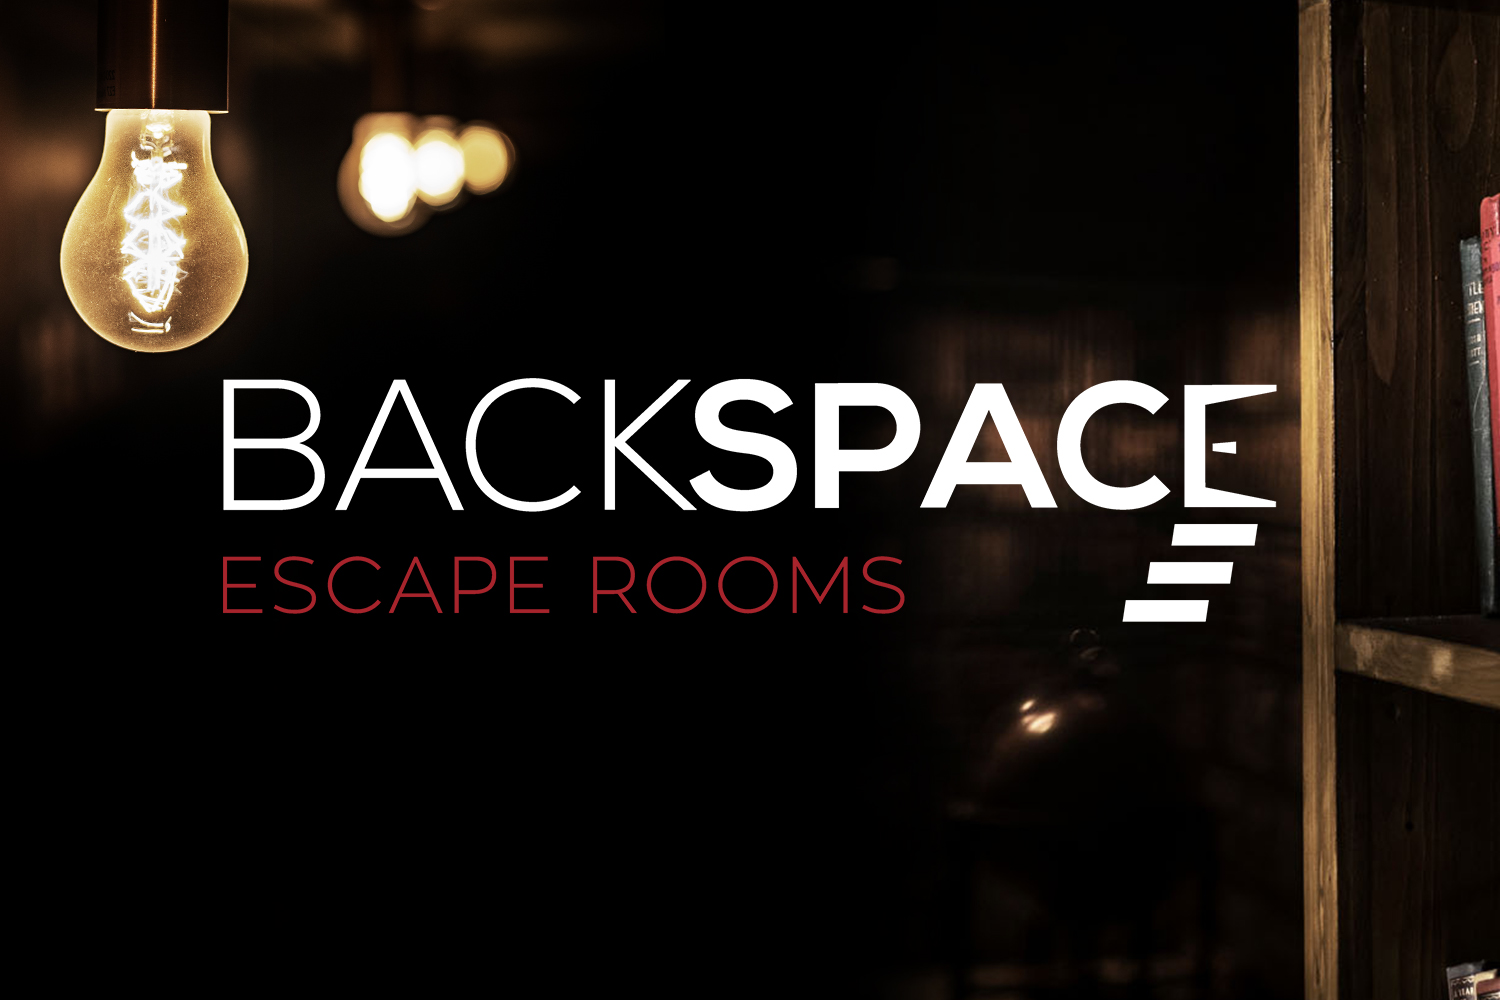 Backspace escape rooms